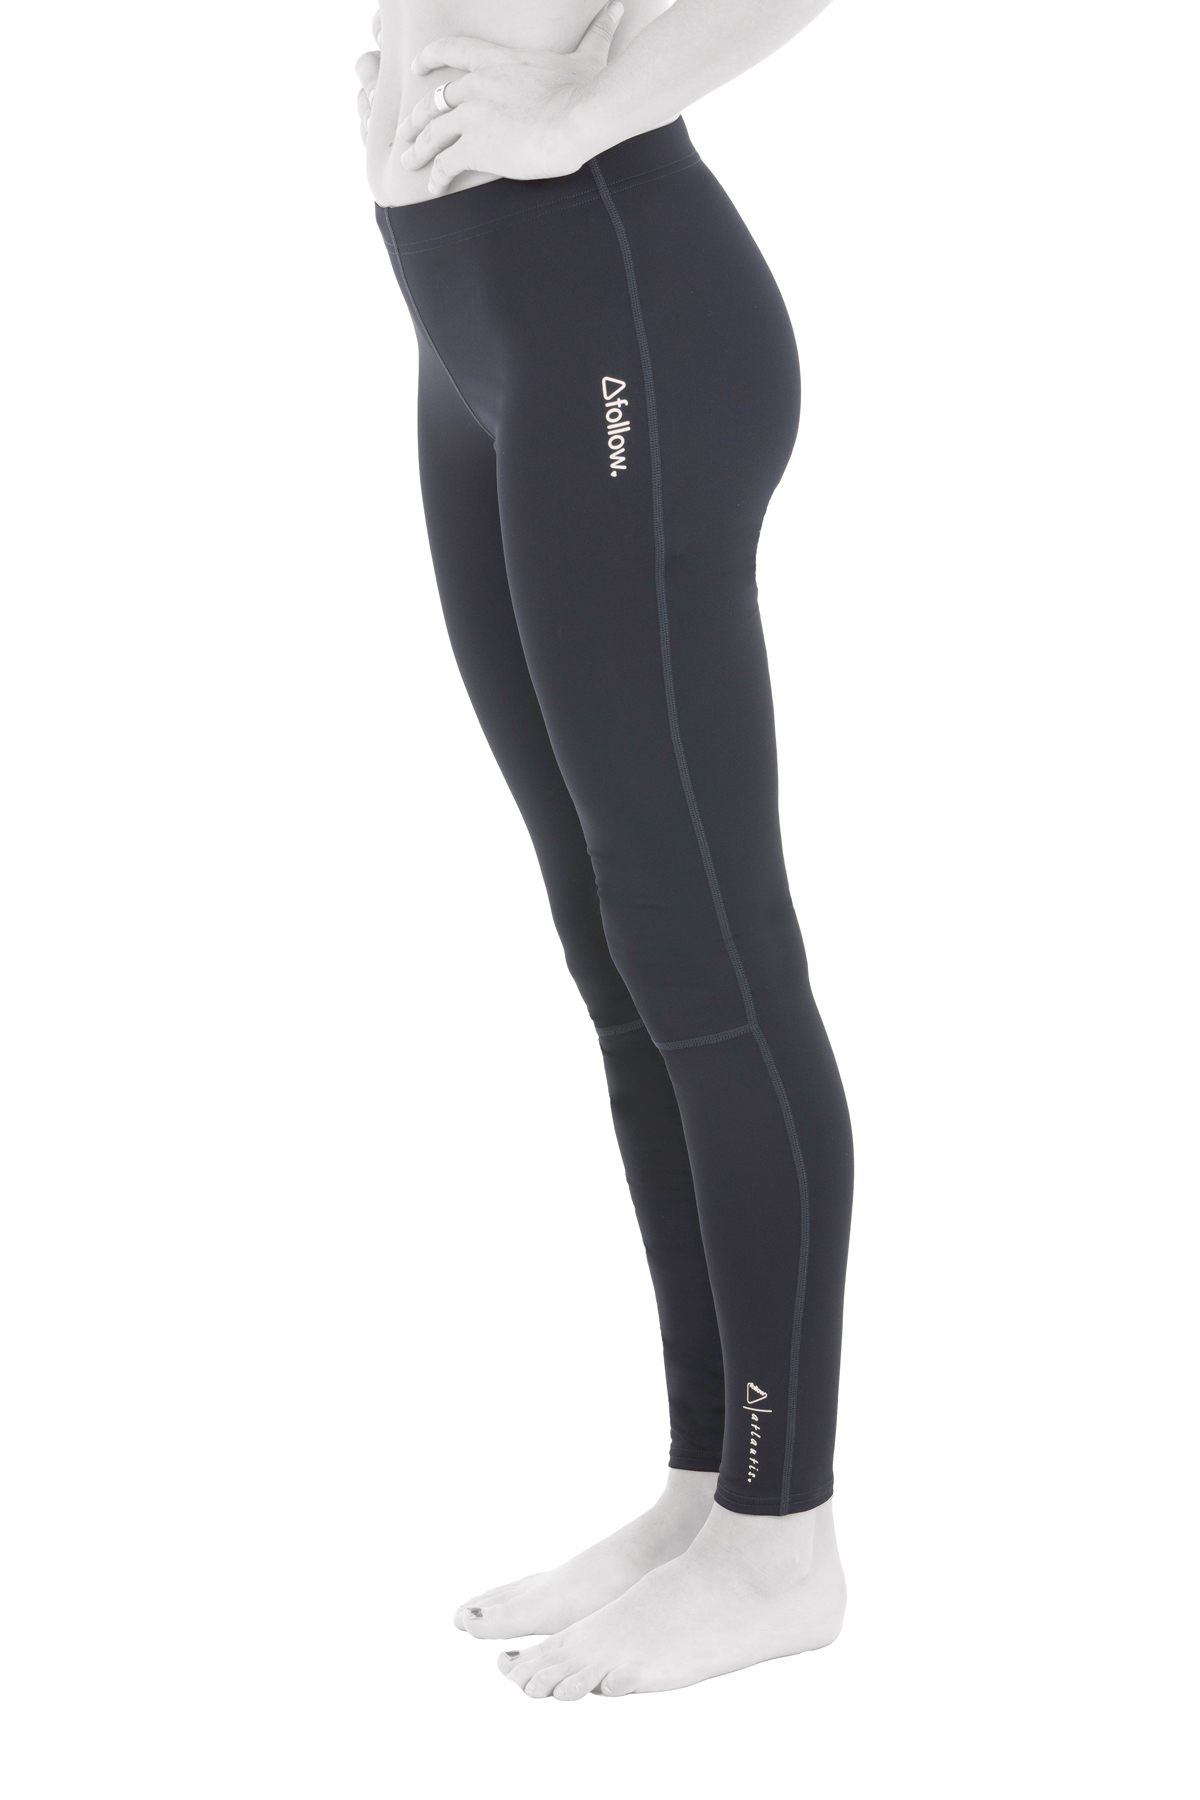 LYCRA LEGGING - BLACK FOLLOW 2019